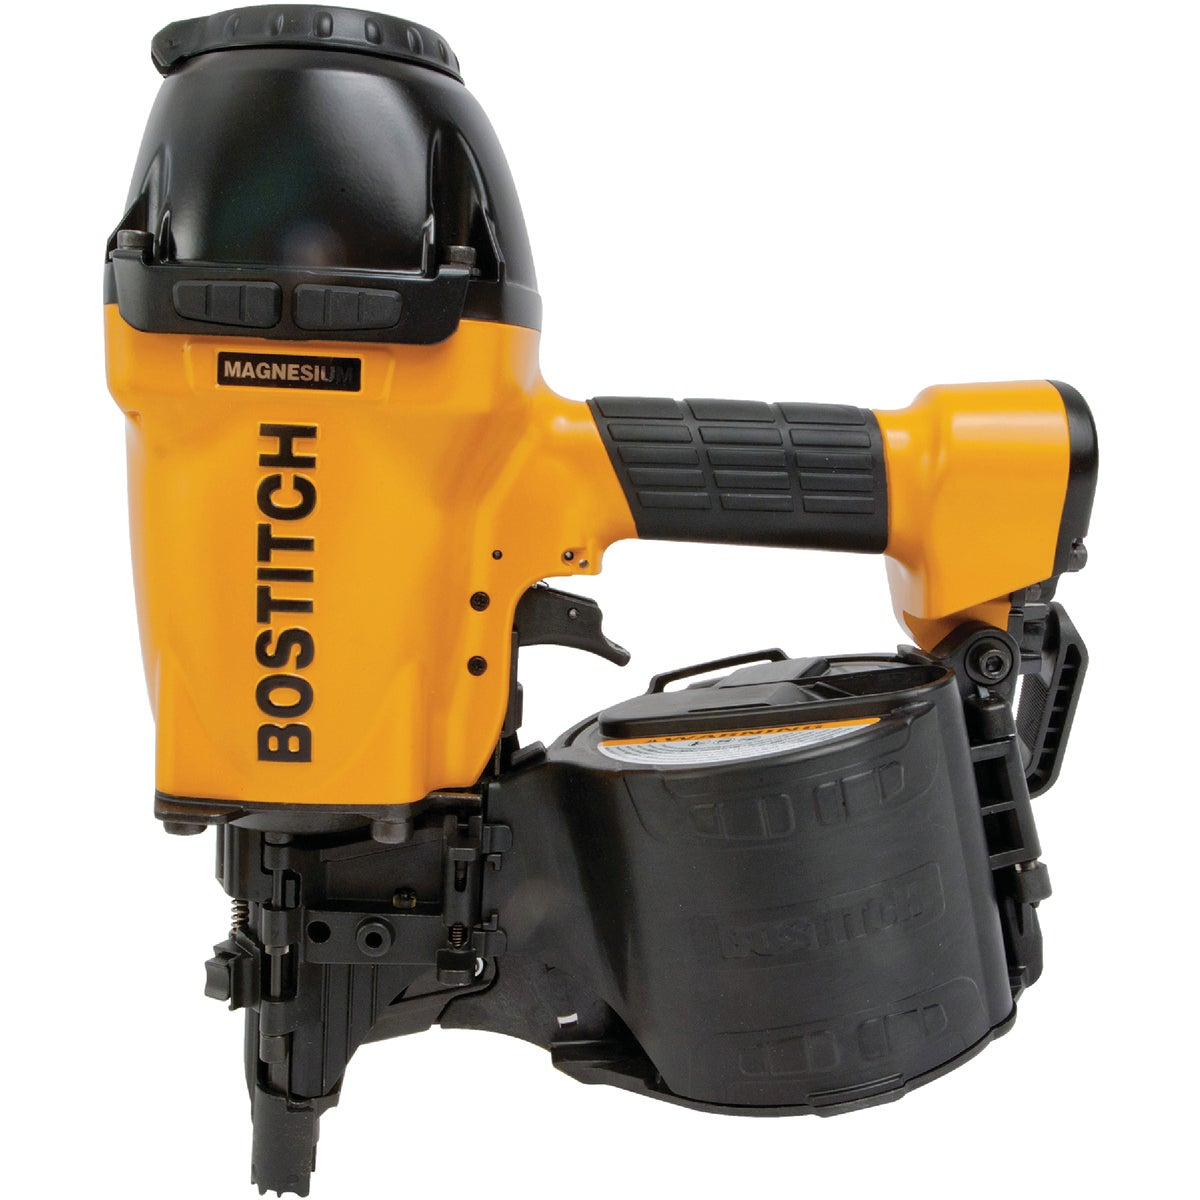 COIL FRAMING NAILER - N89C-1 by Stanley Bostitch